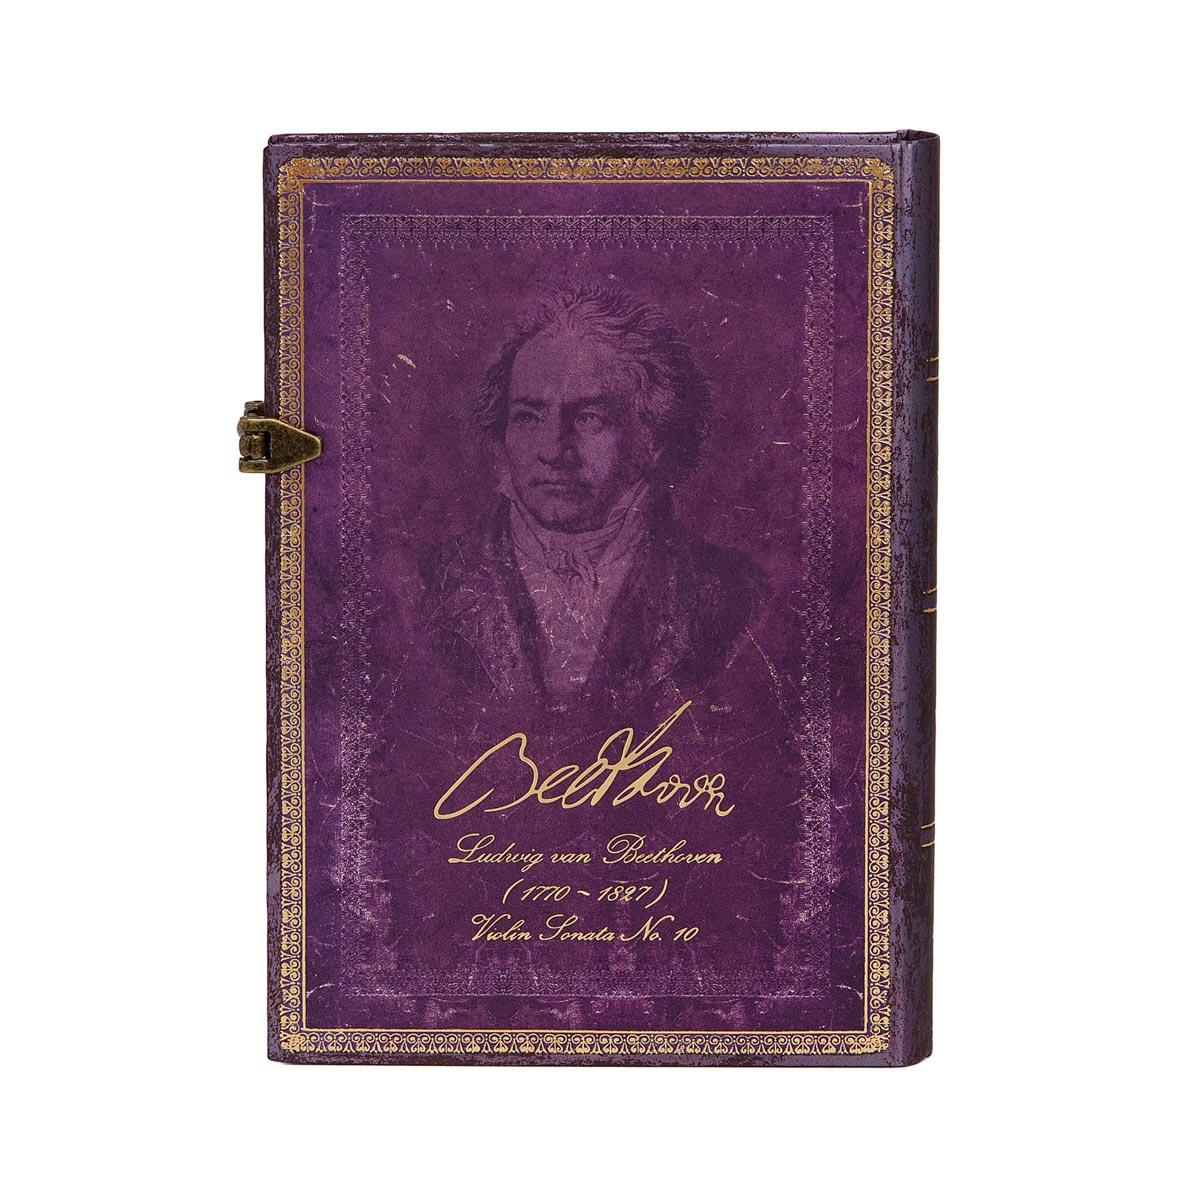 Paperblanks Beethoven's 250th Bday Midi 5x7 Inch Journal